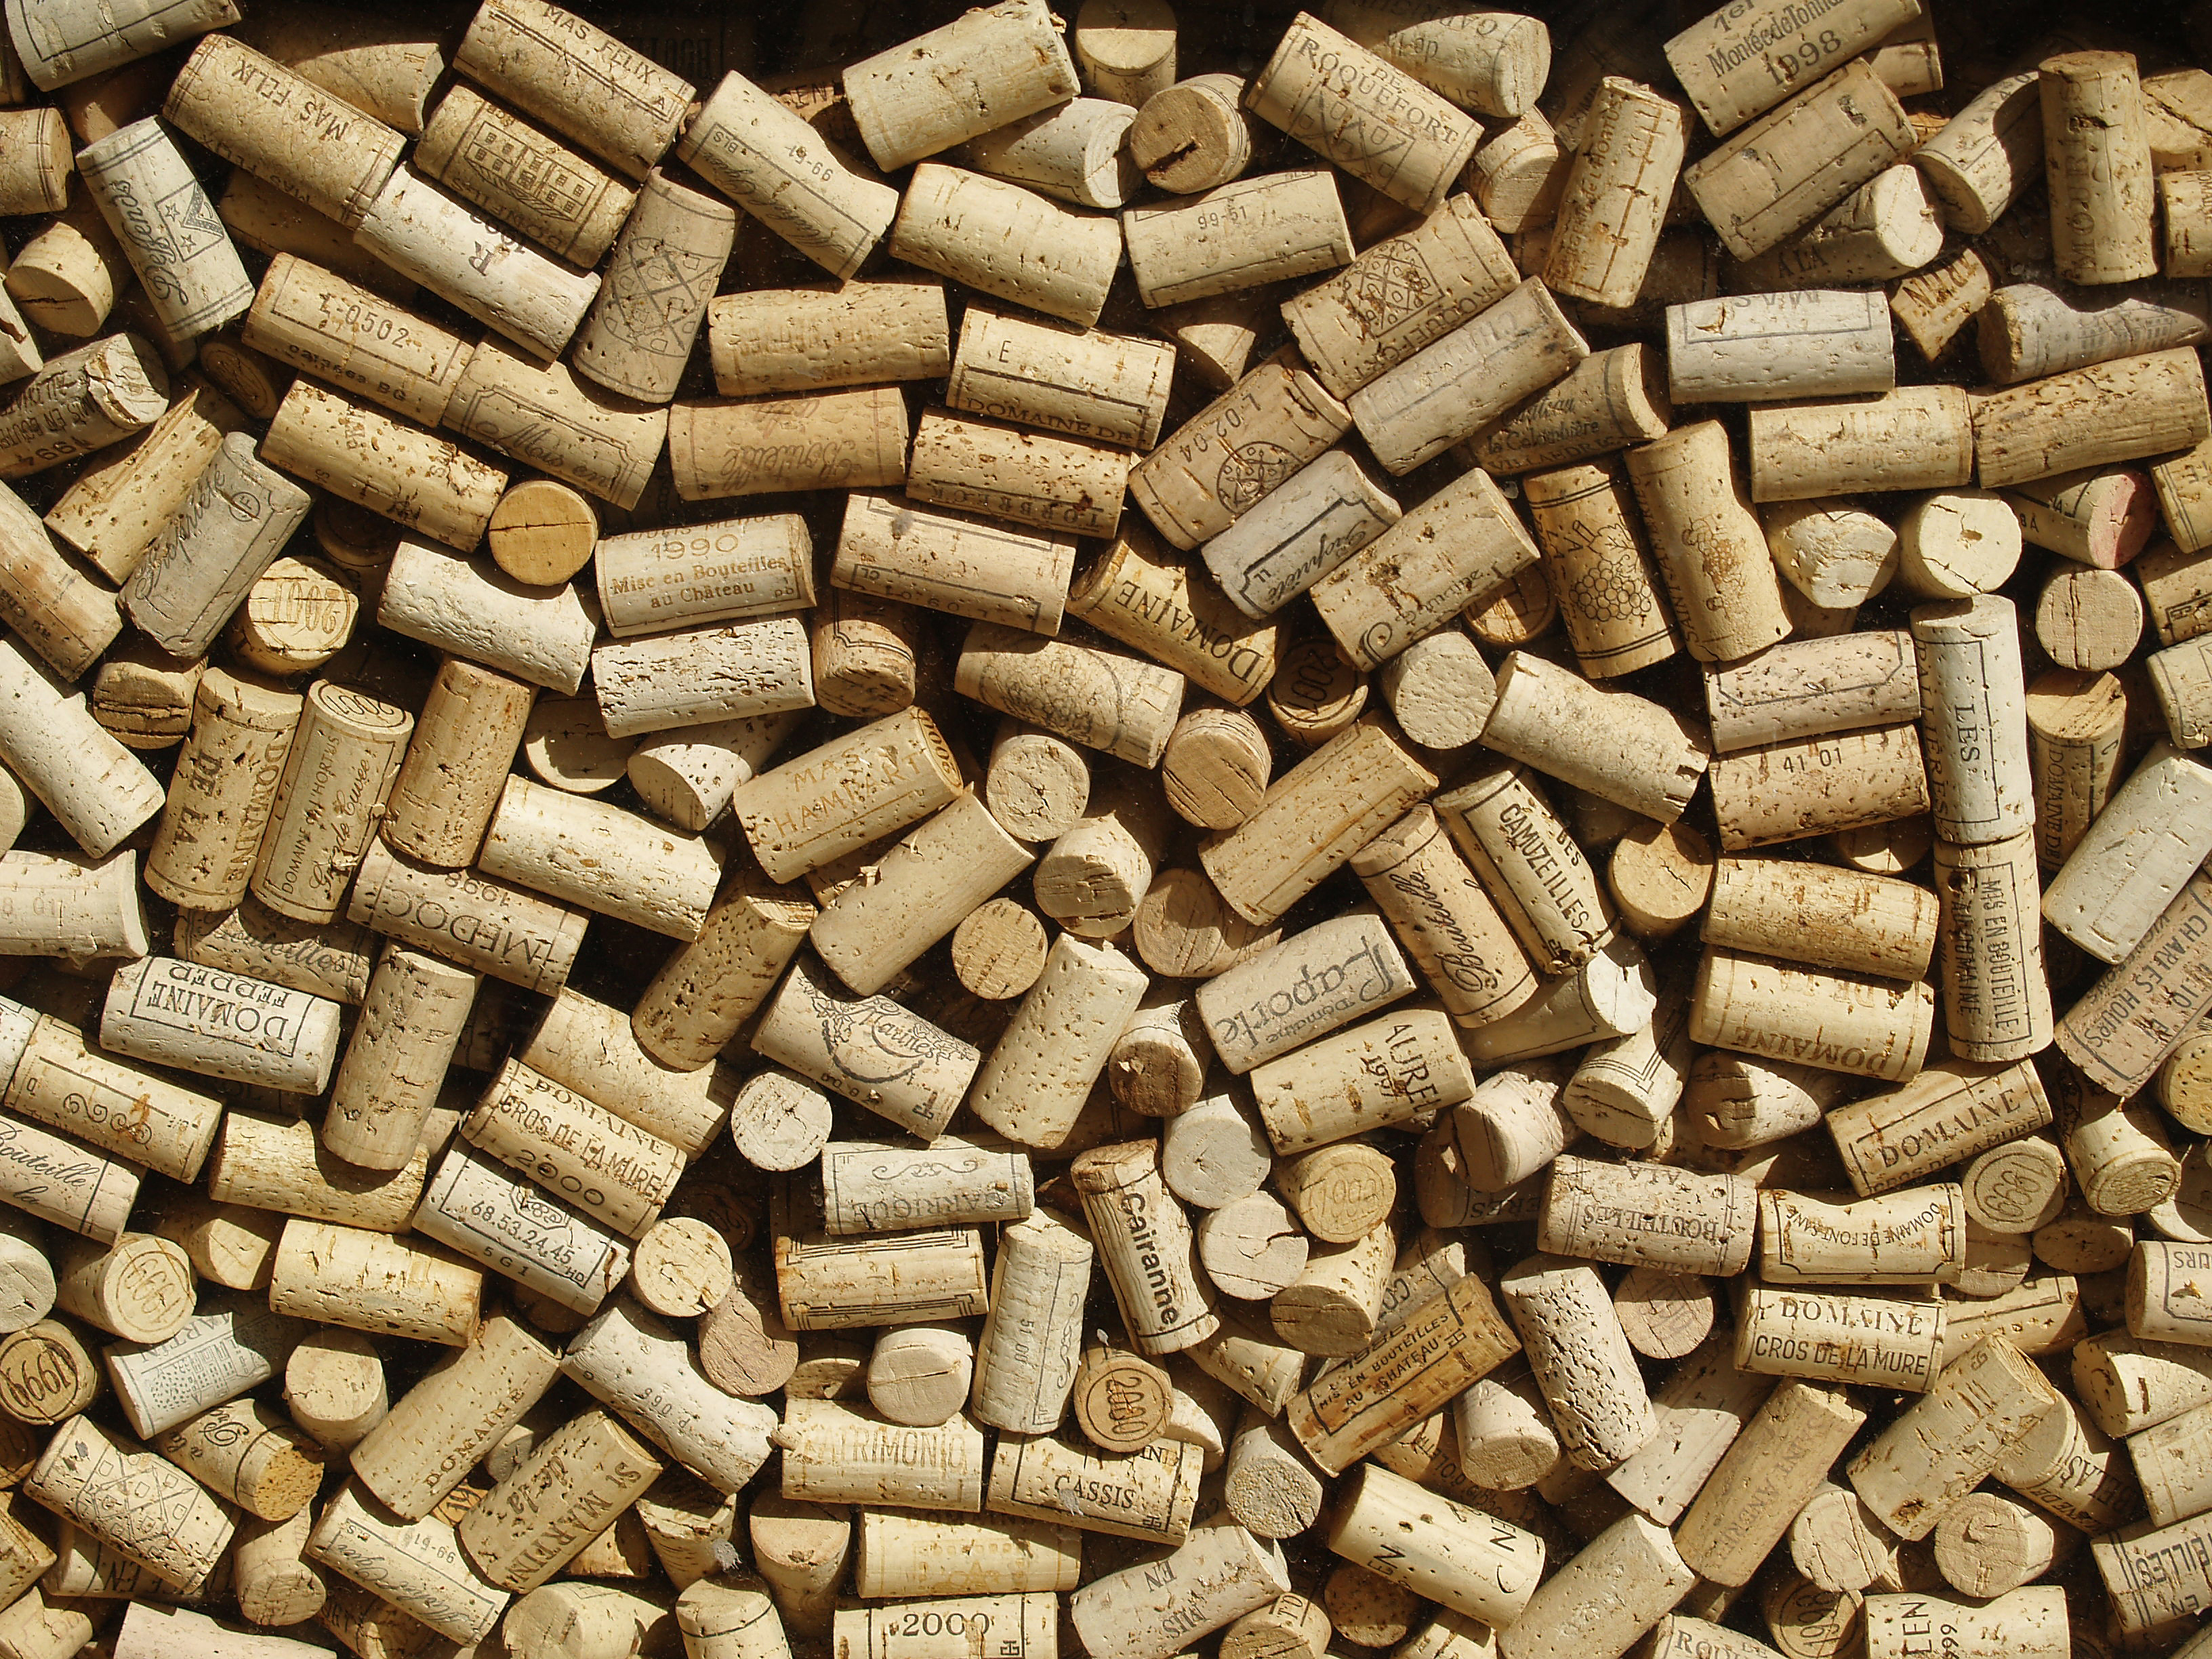 File:Wine bottle corks behind glass.jpg